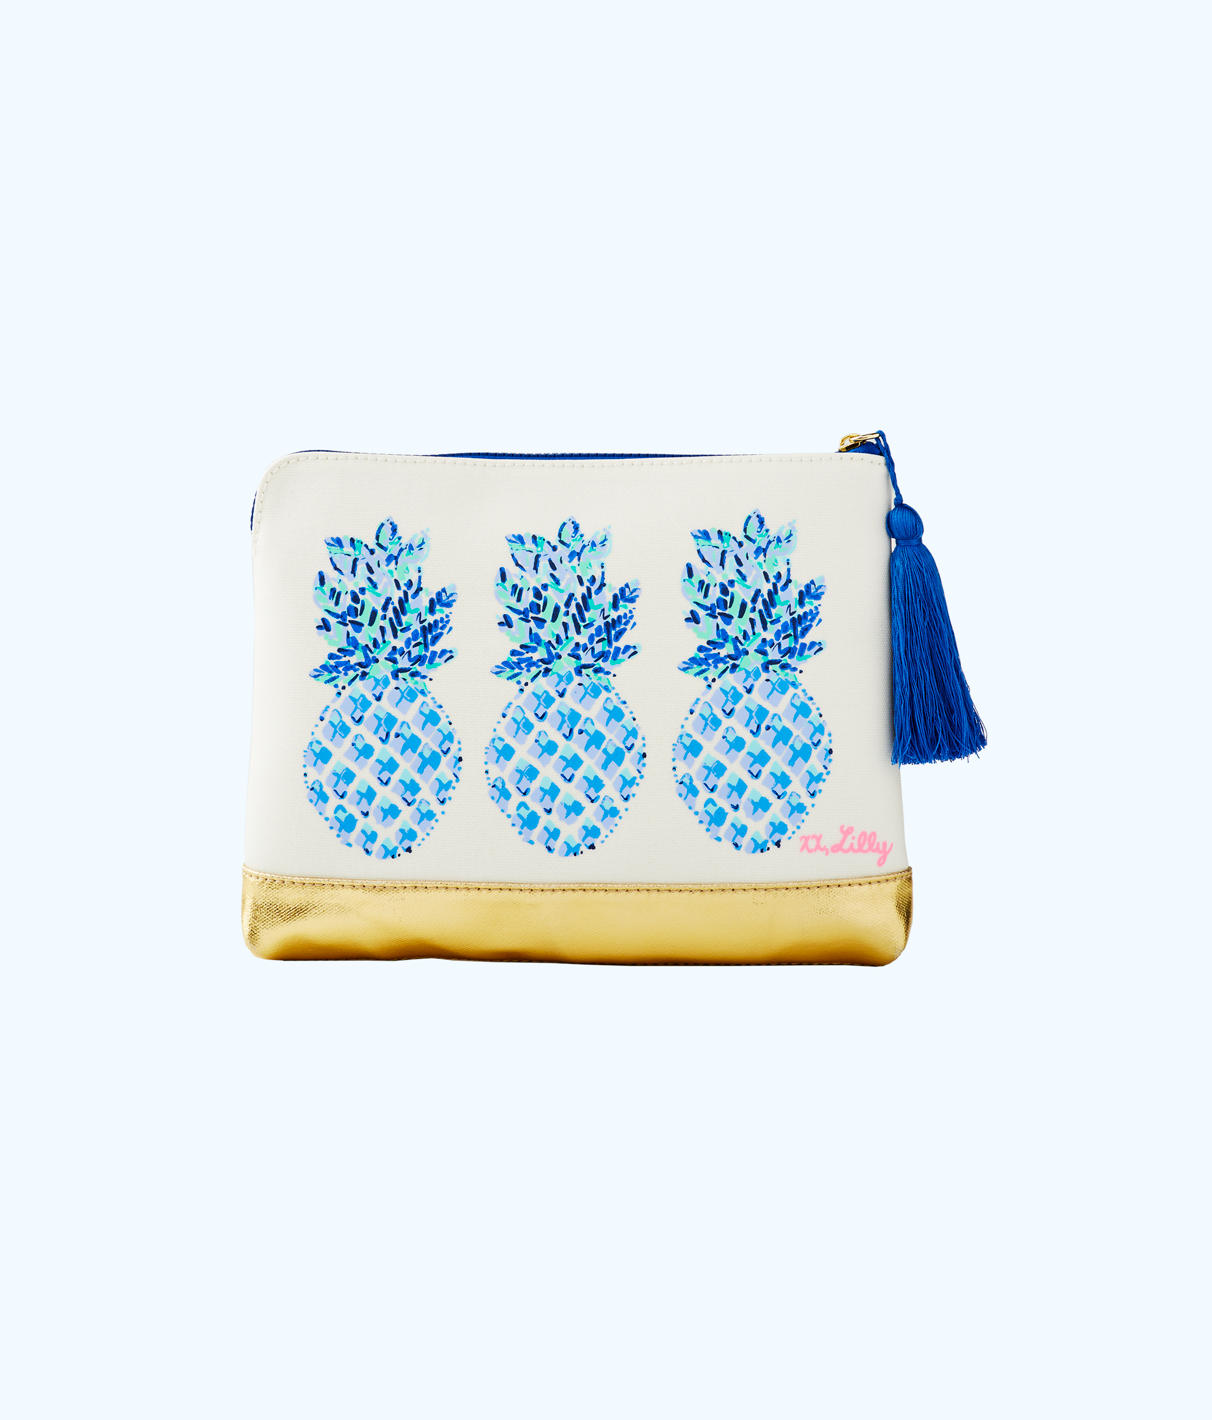 Lilly Pulitzer Lilly Pulitzer Bon Voyage Pouch